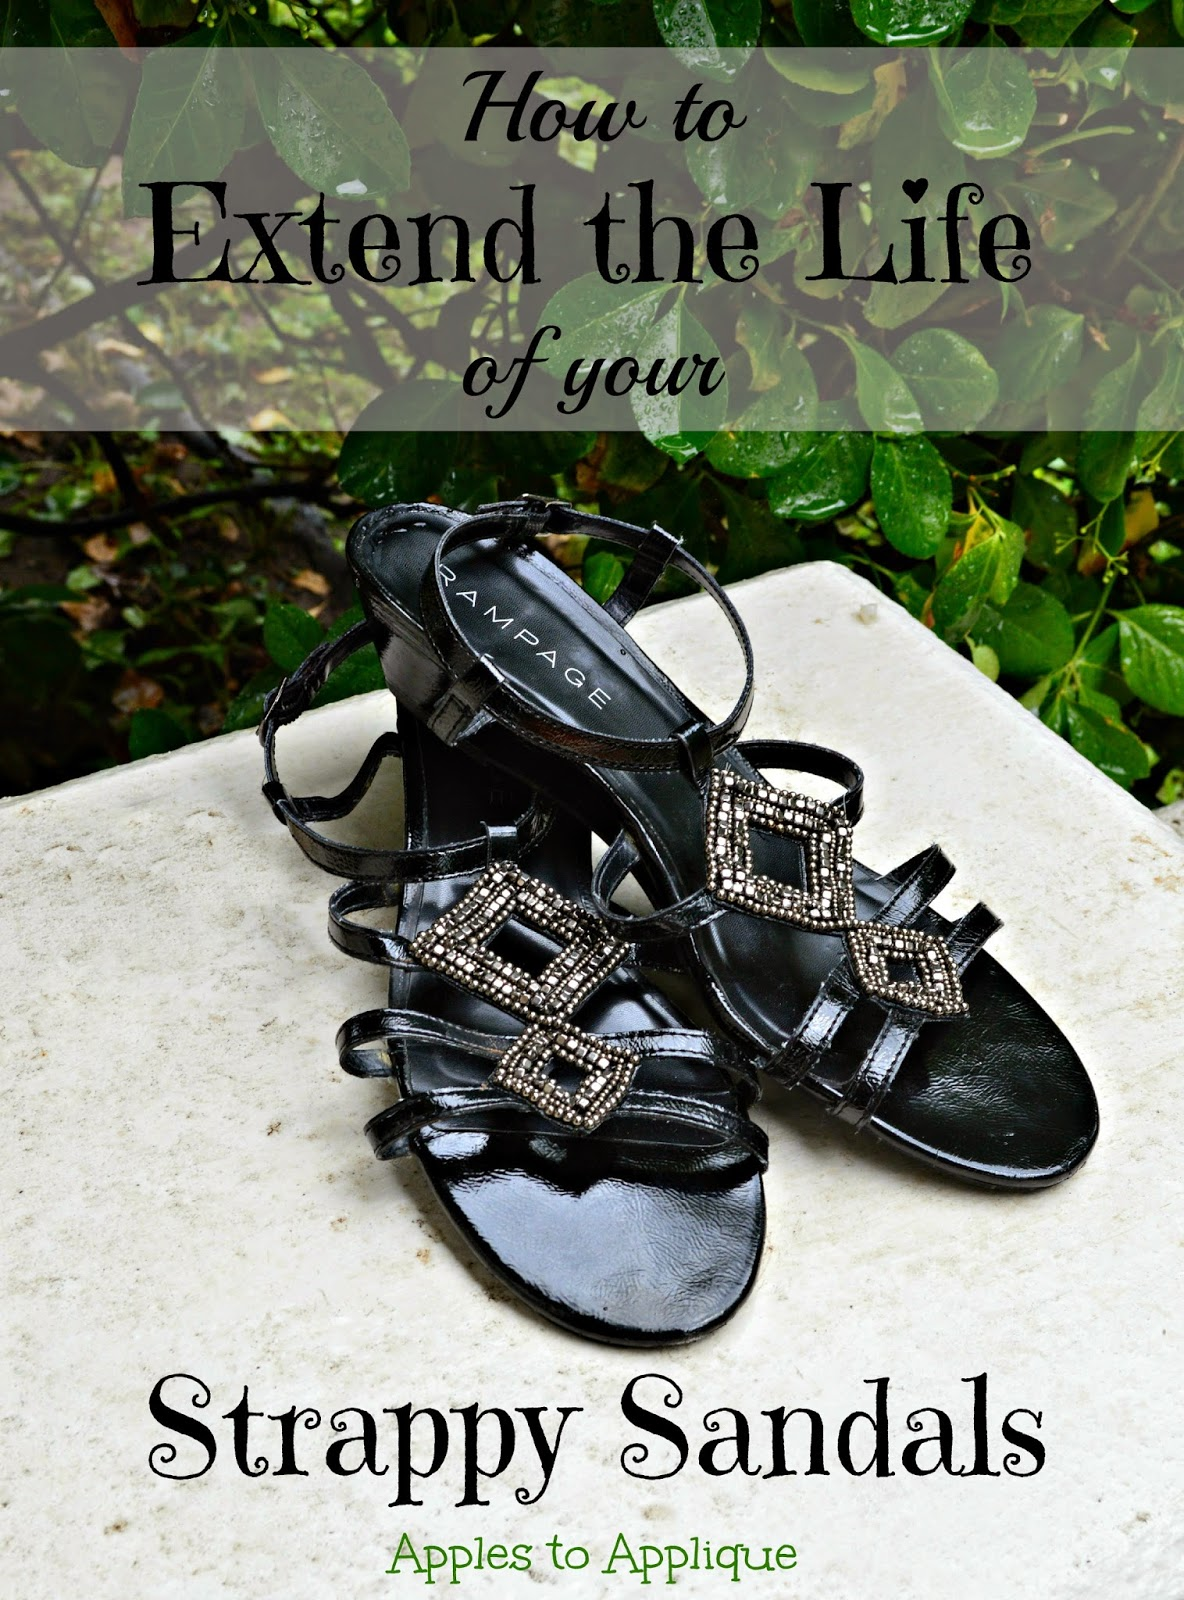 How to extend the life of your strappy sandals | Apples to Applique #summer #DIY #tips